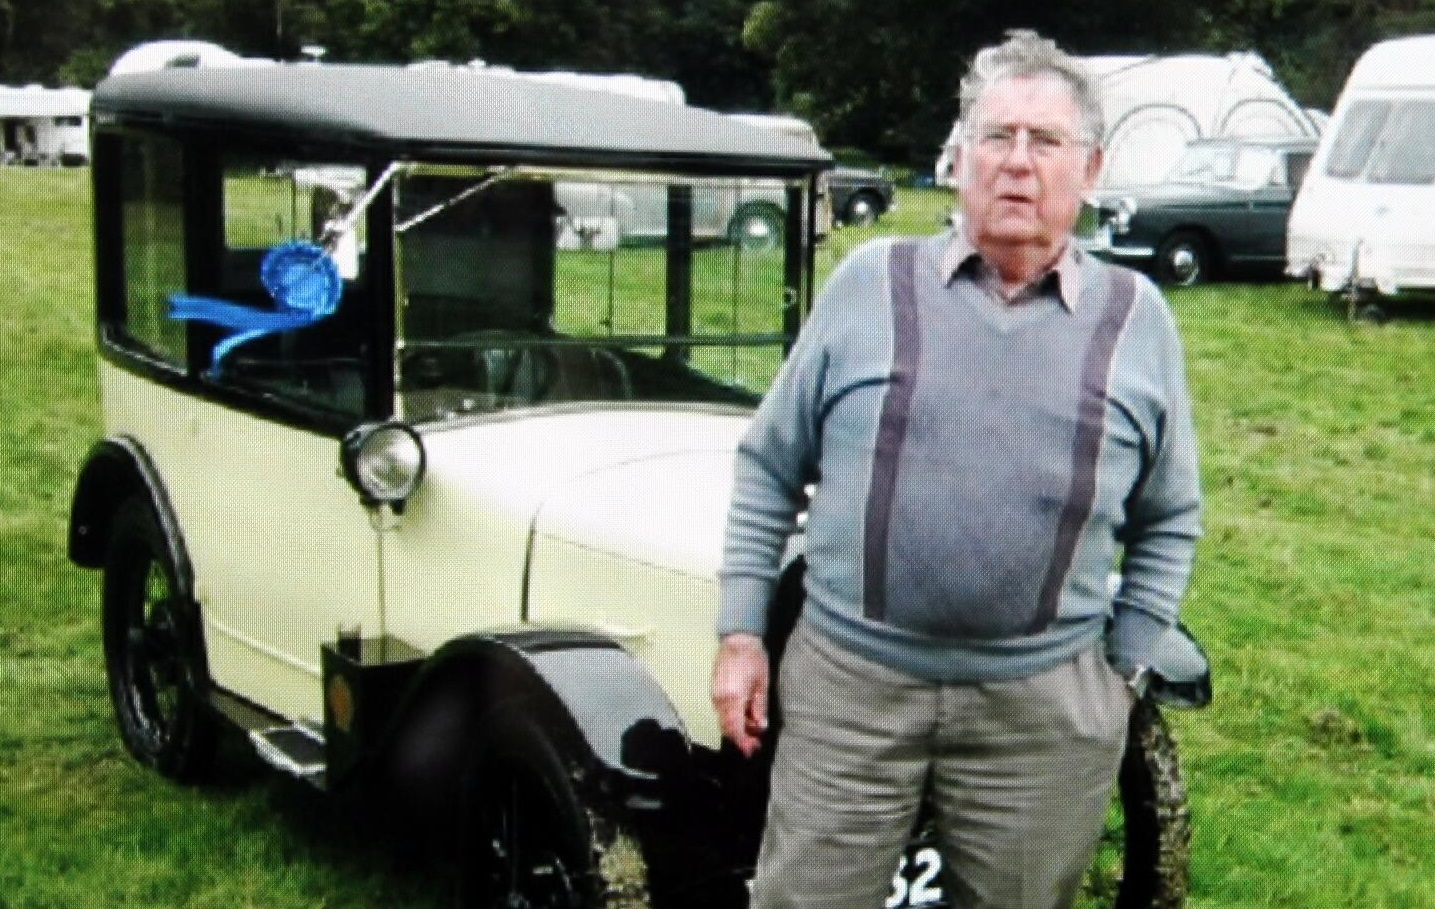 William Sutherland (77) died after falling from a ladder.